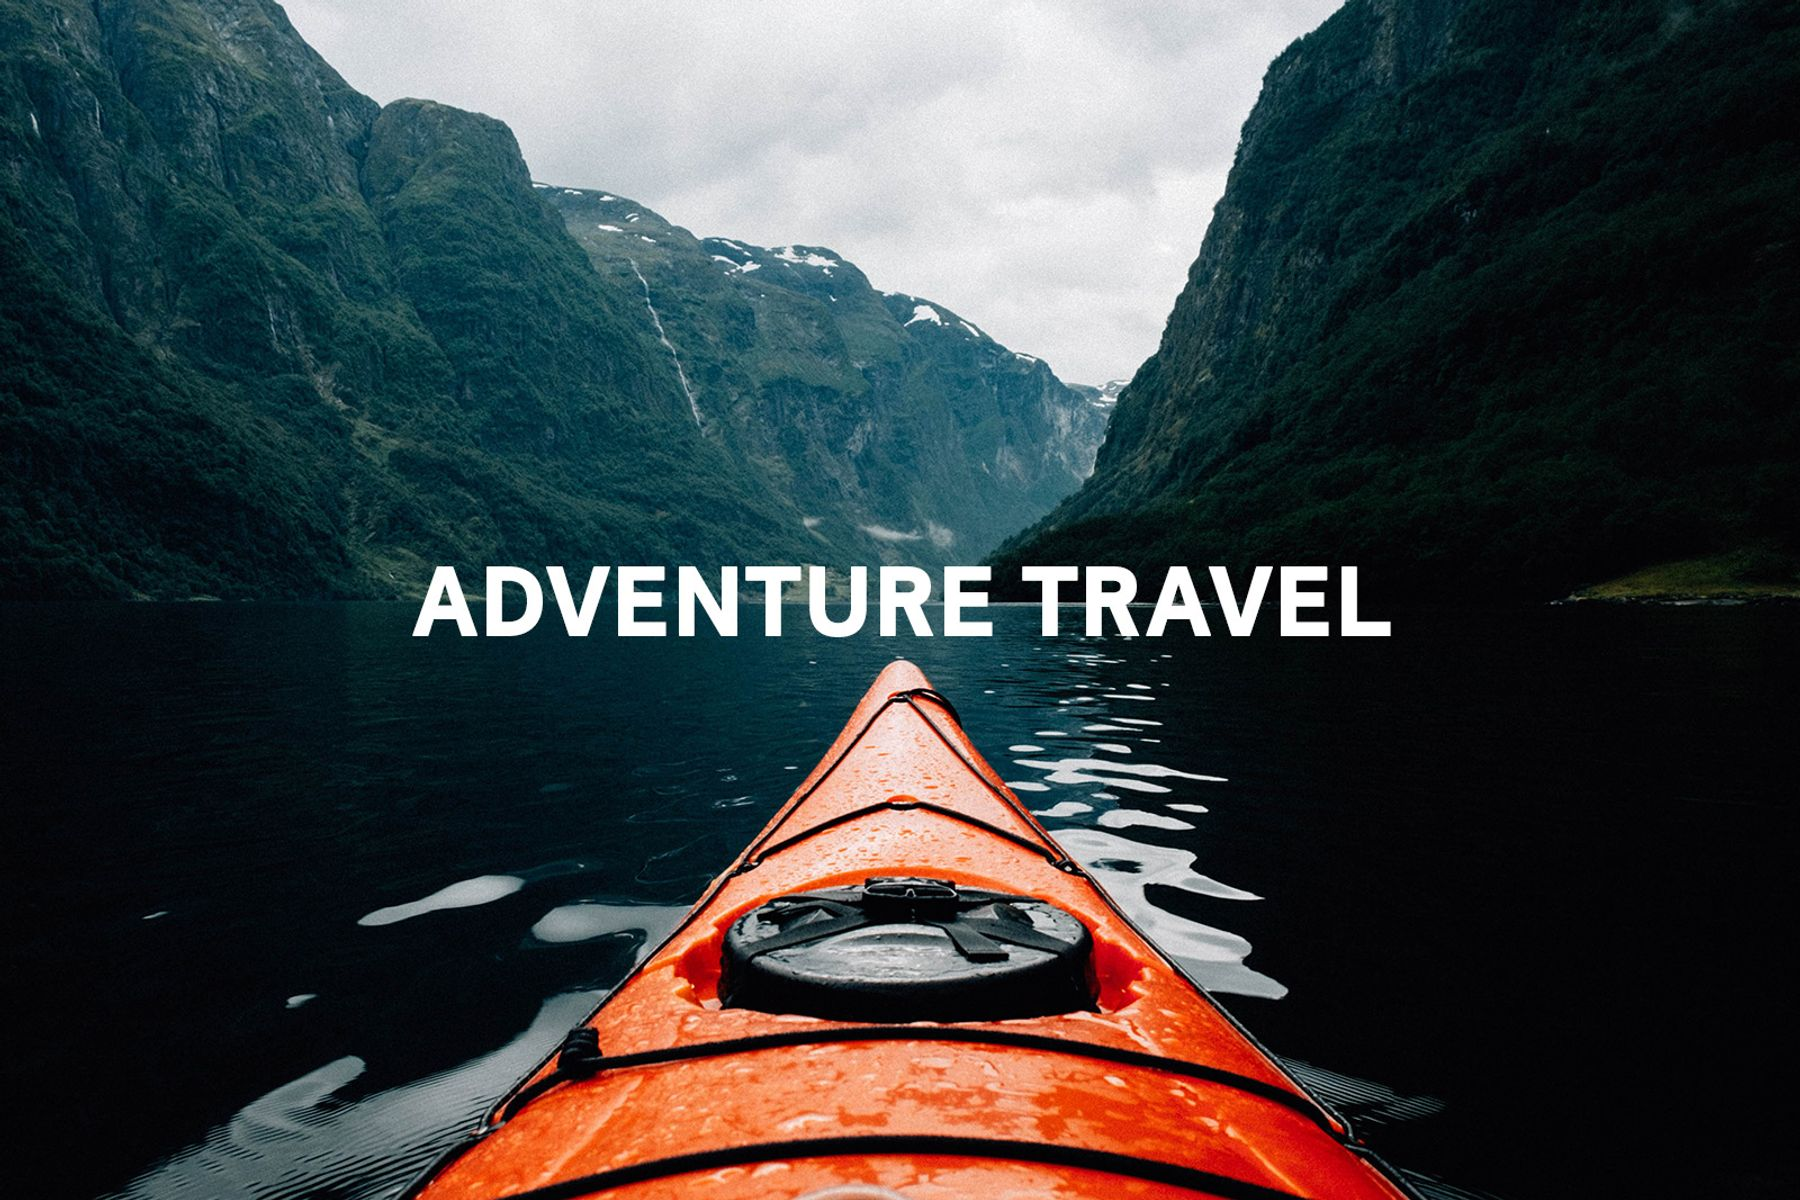 """Tip of red kayak on the water between two cliffs with the words """"adventure travel"""" in the middle of the photo"""